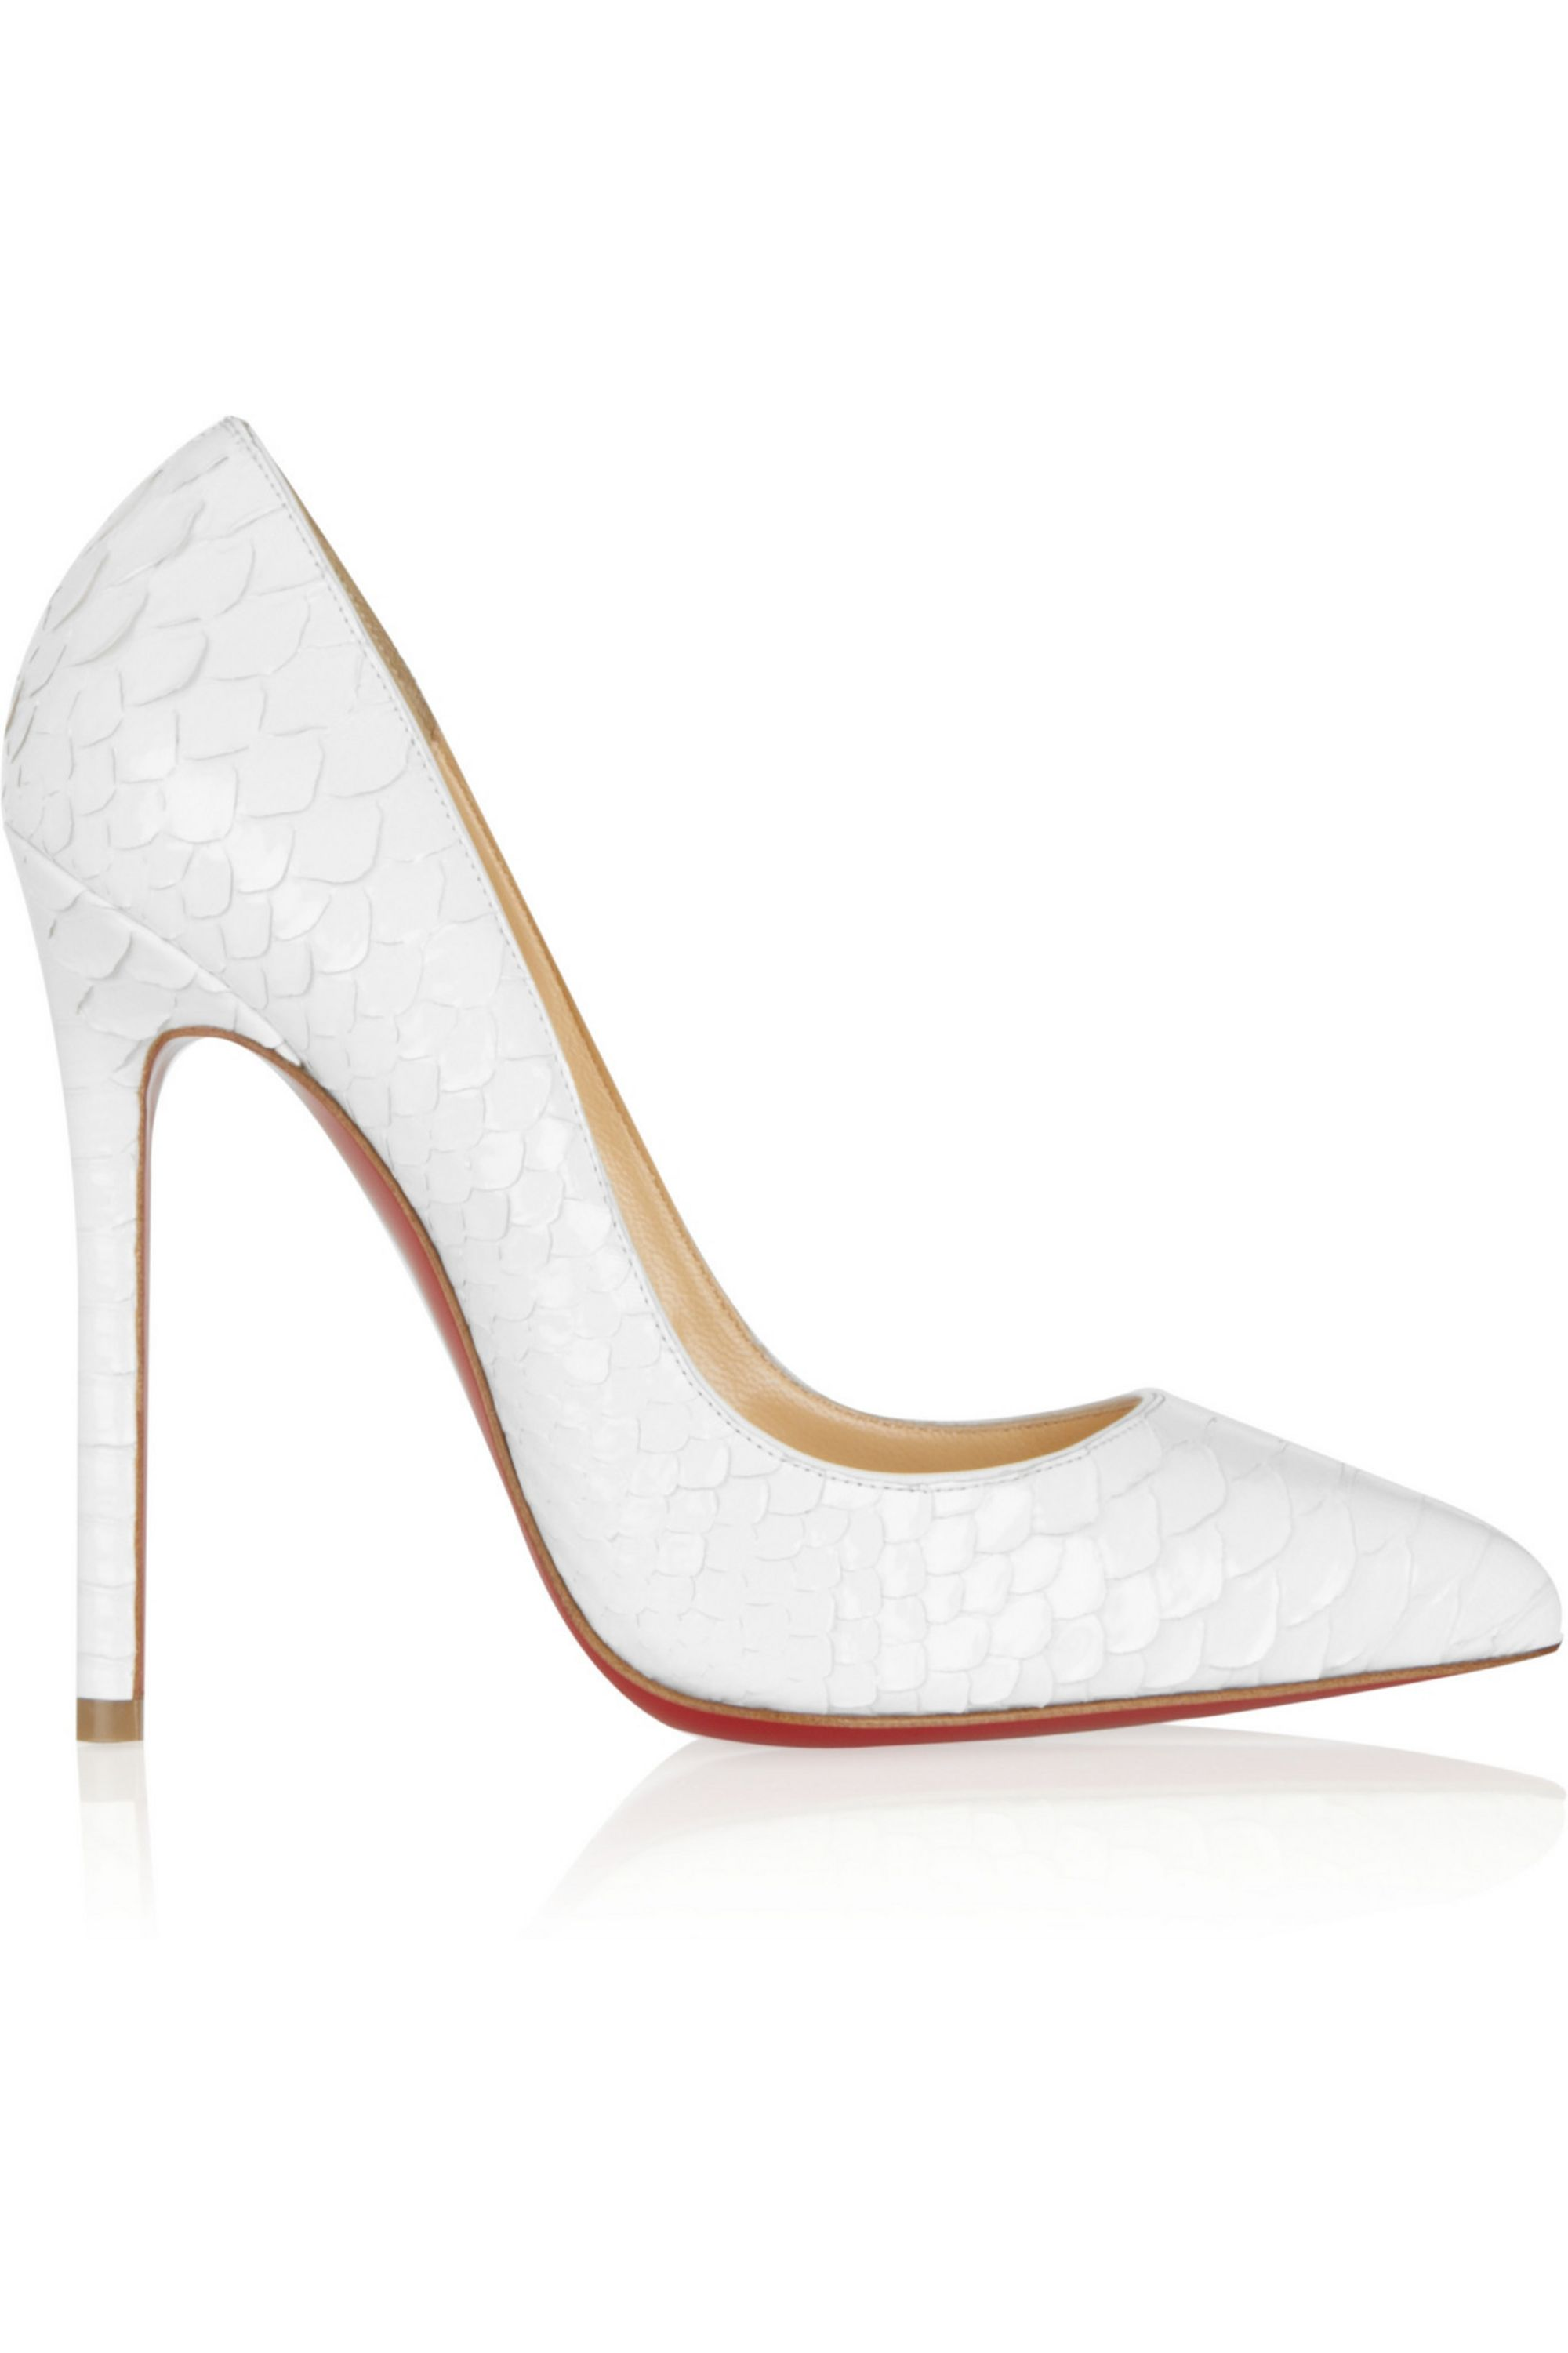 Christian Louboutin Pigalle 120 glossed python pumps